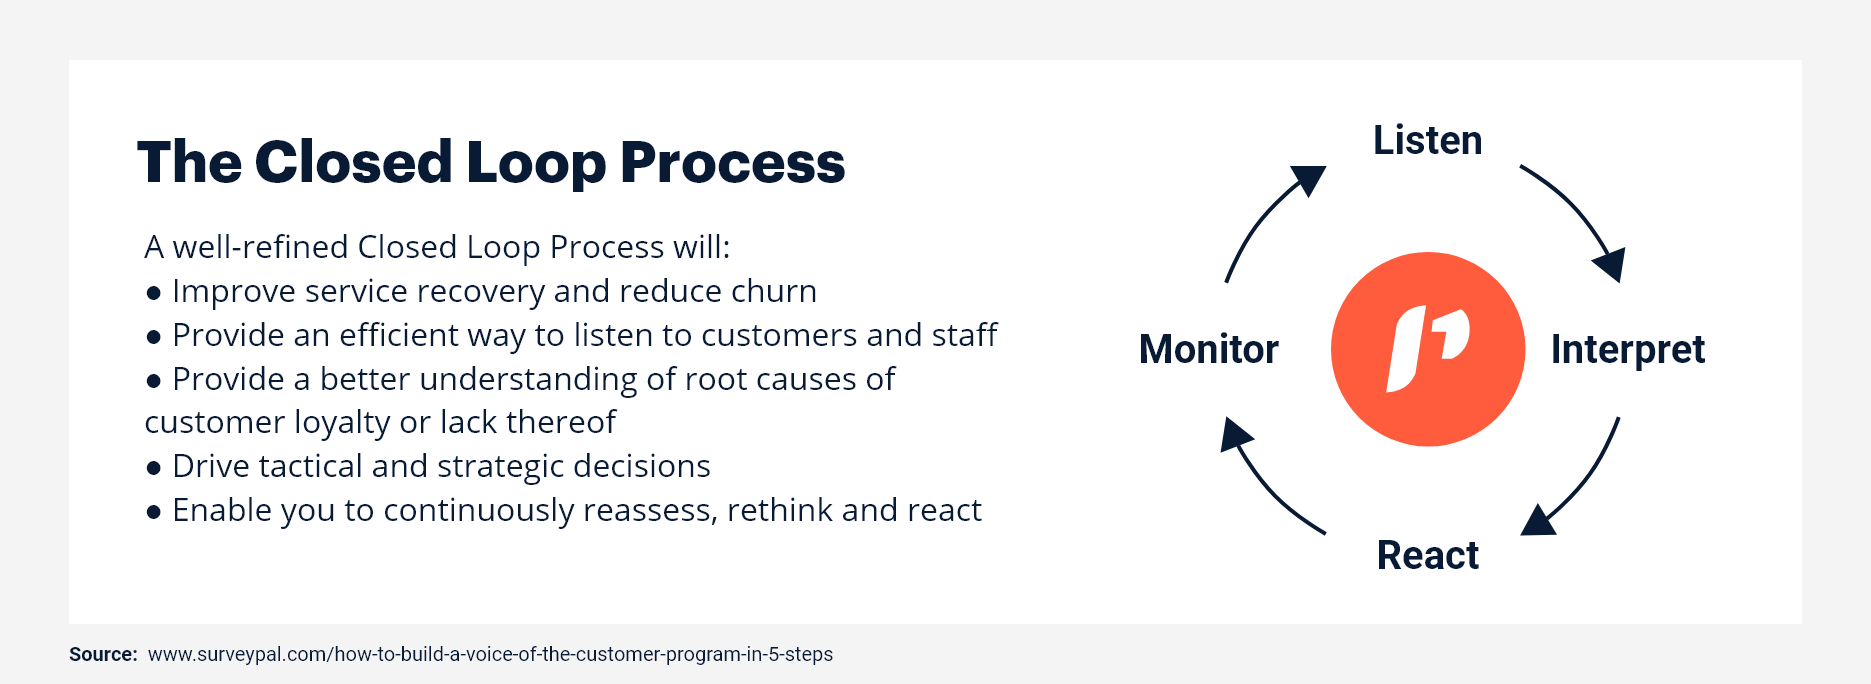 The closed loop process.png